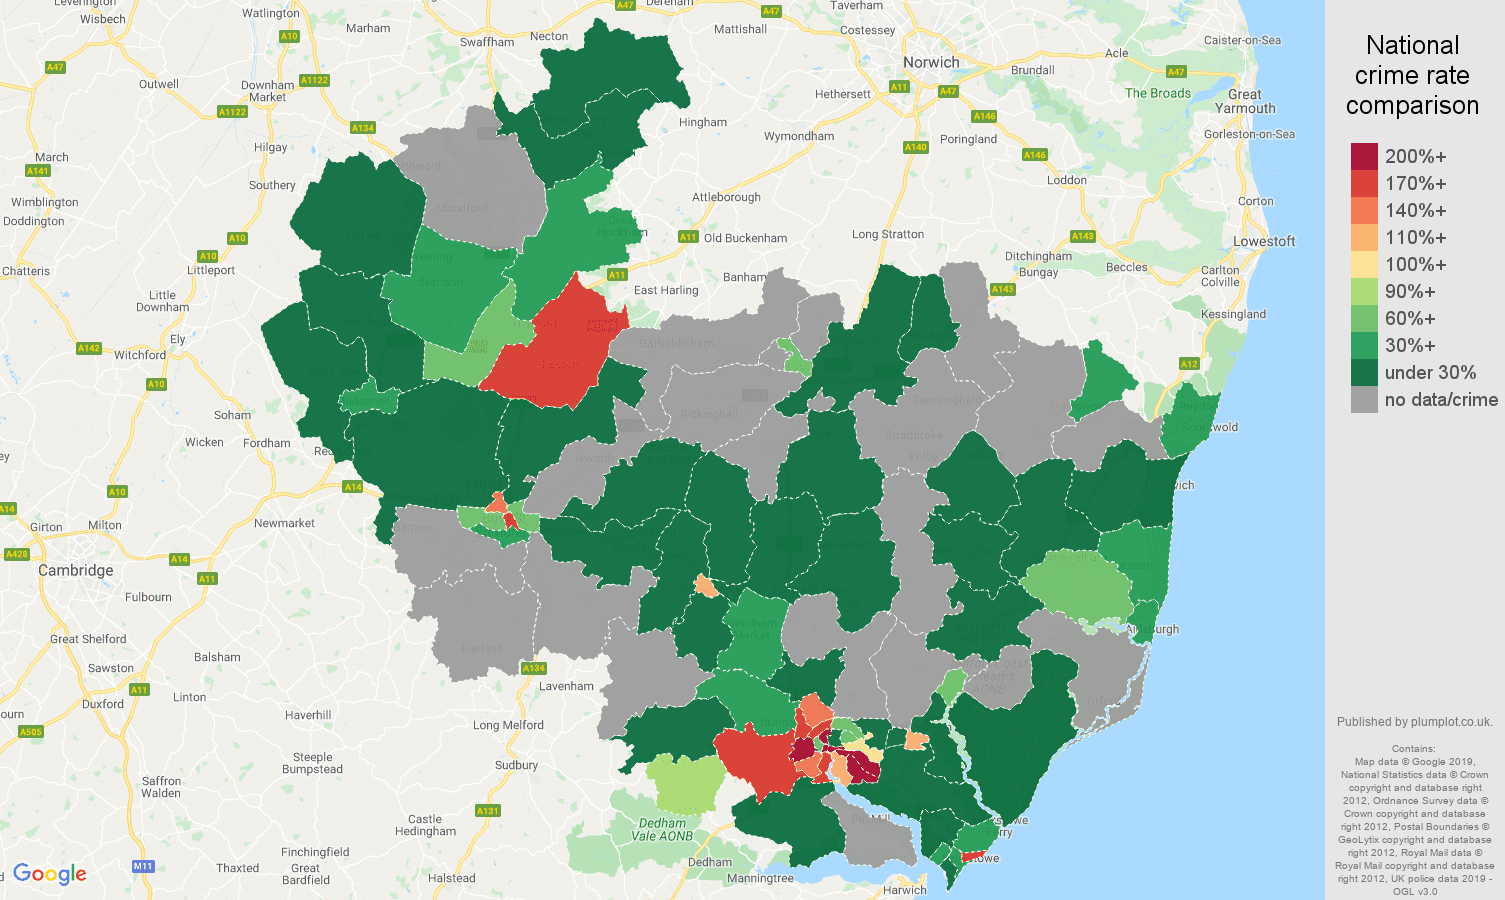 Ipswich shoplifting crime rate comparison map